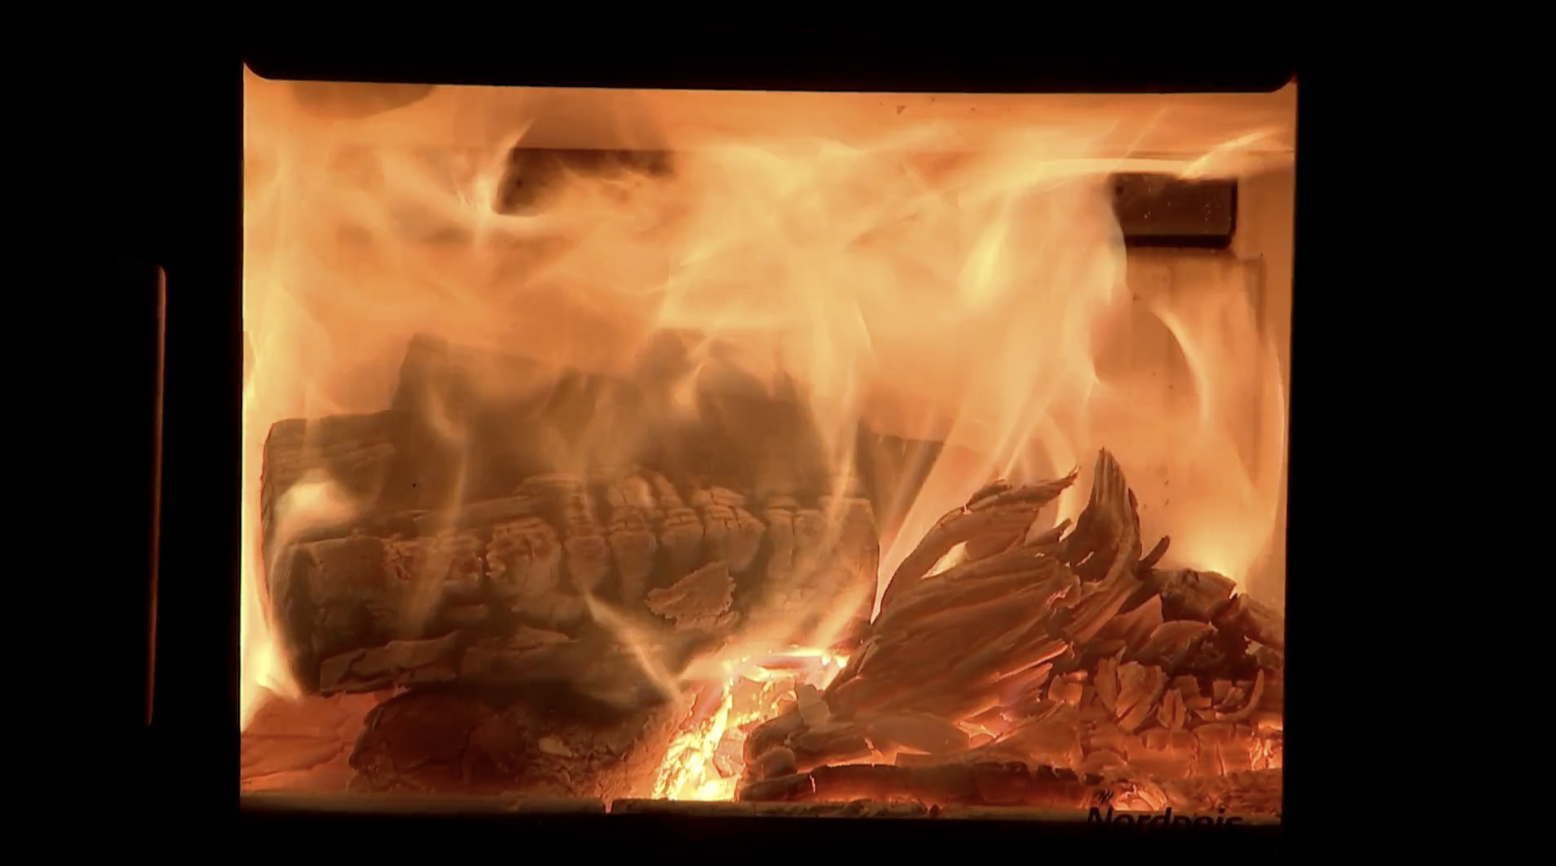 Fuel for coal fires and wood-burning stoves to be banned - channel 4